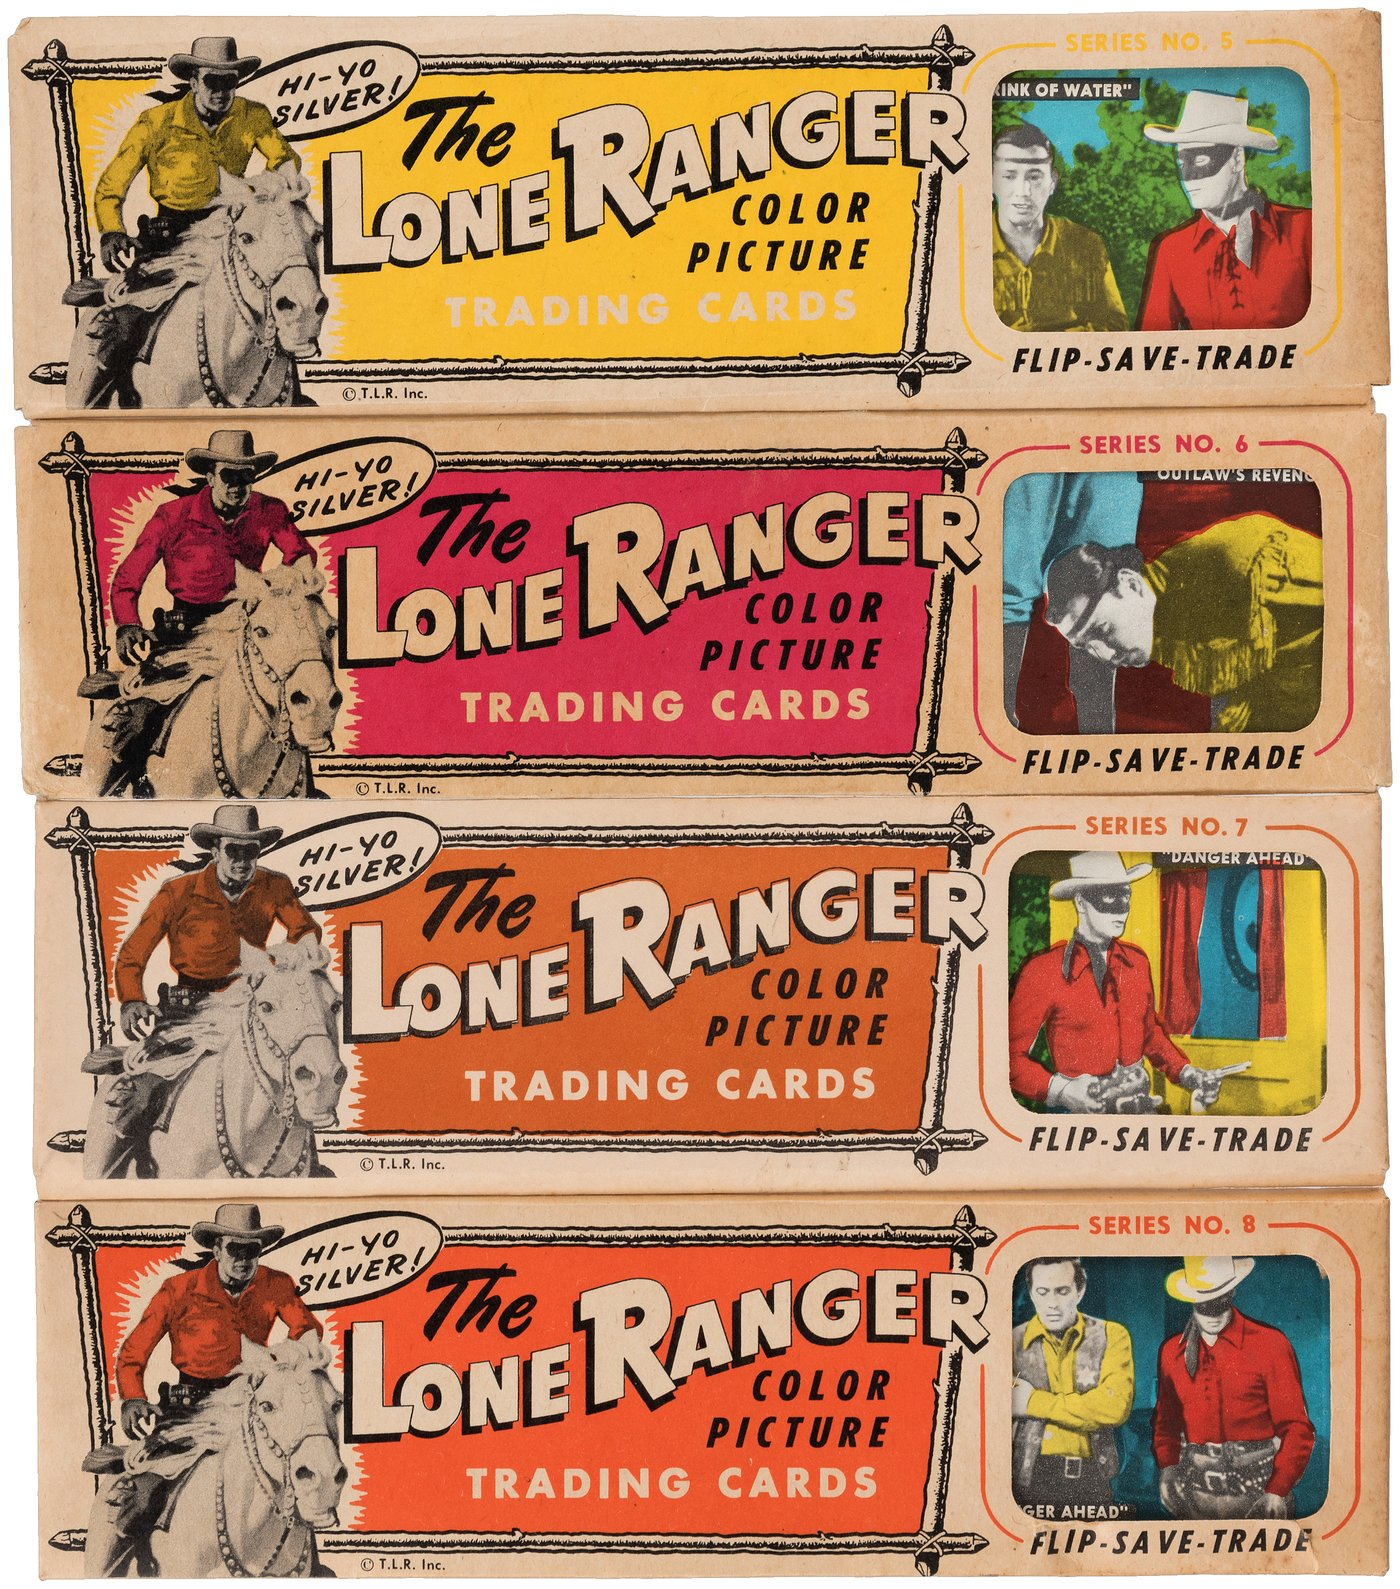 Hake S The Lone Ranger Color Picture Trading Cards Full Packs Single Cards Lot